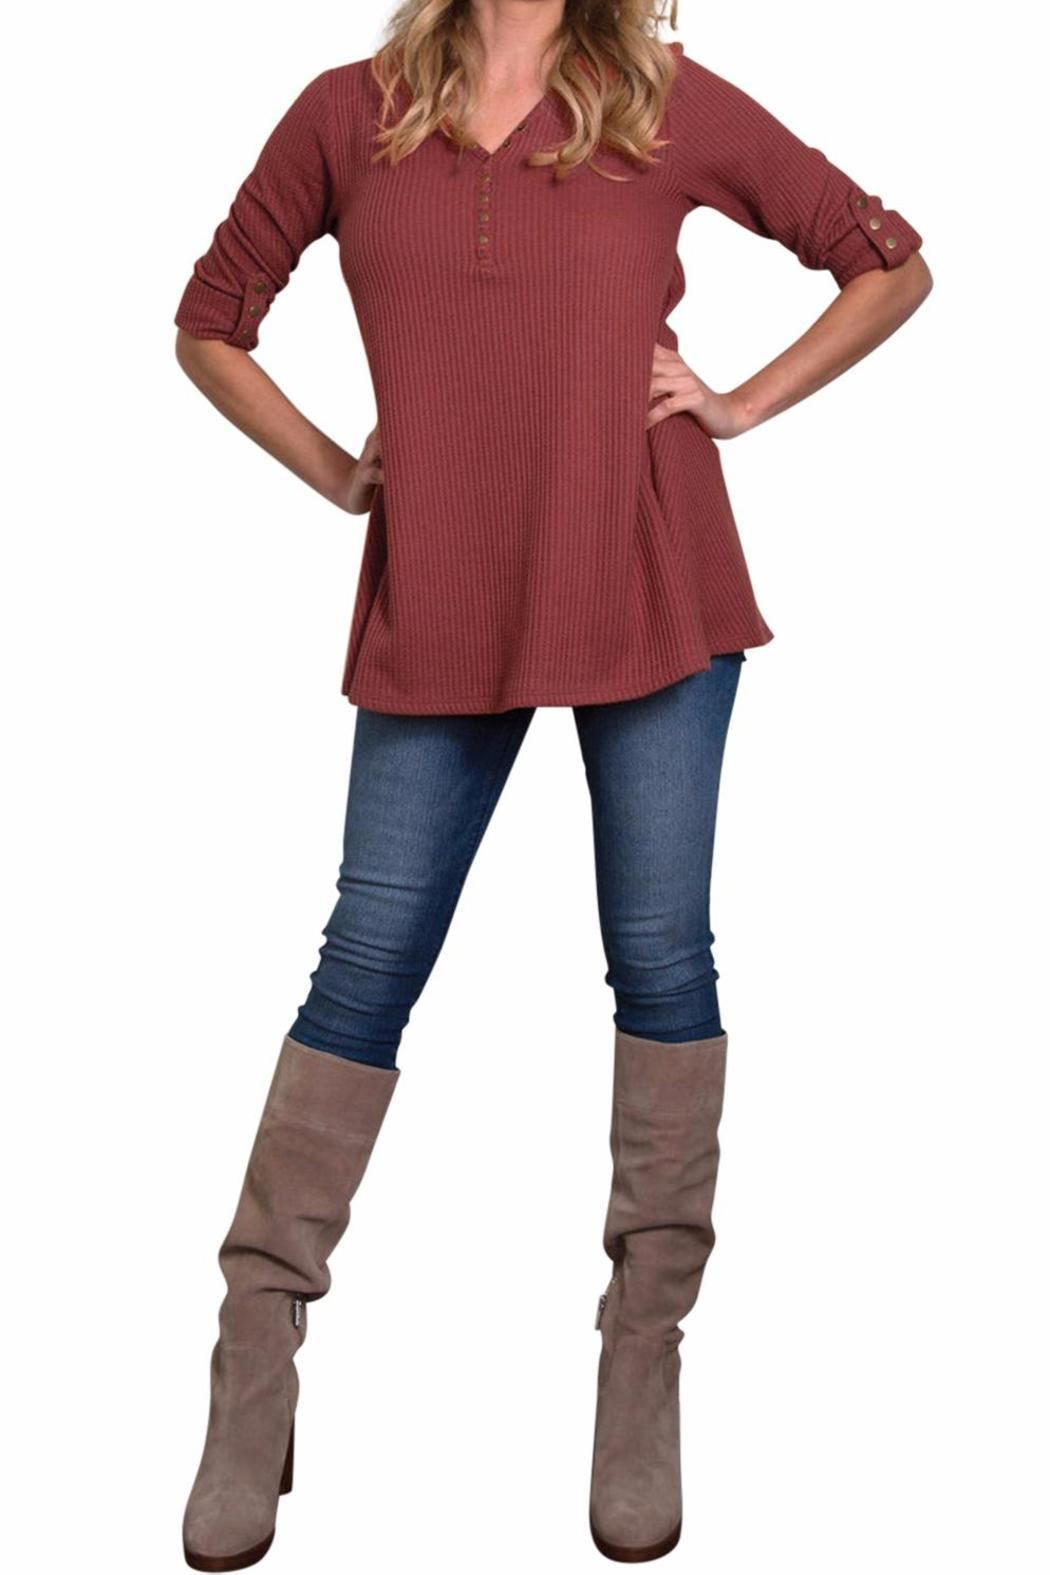 Simply Noelle Waffle Thermal Top From Ohio By Owl Eyes On